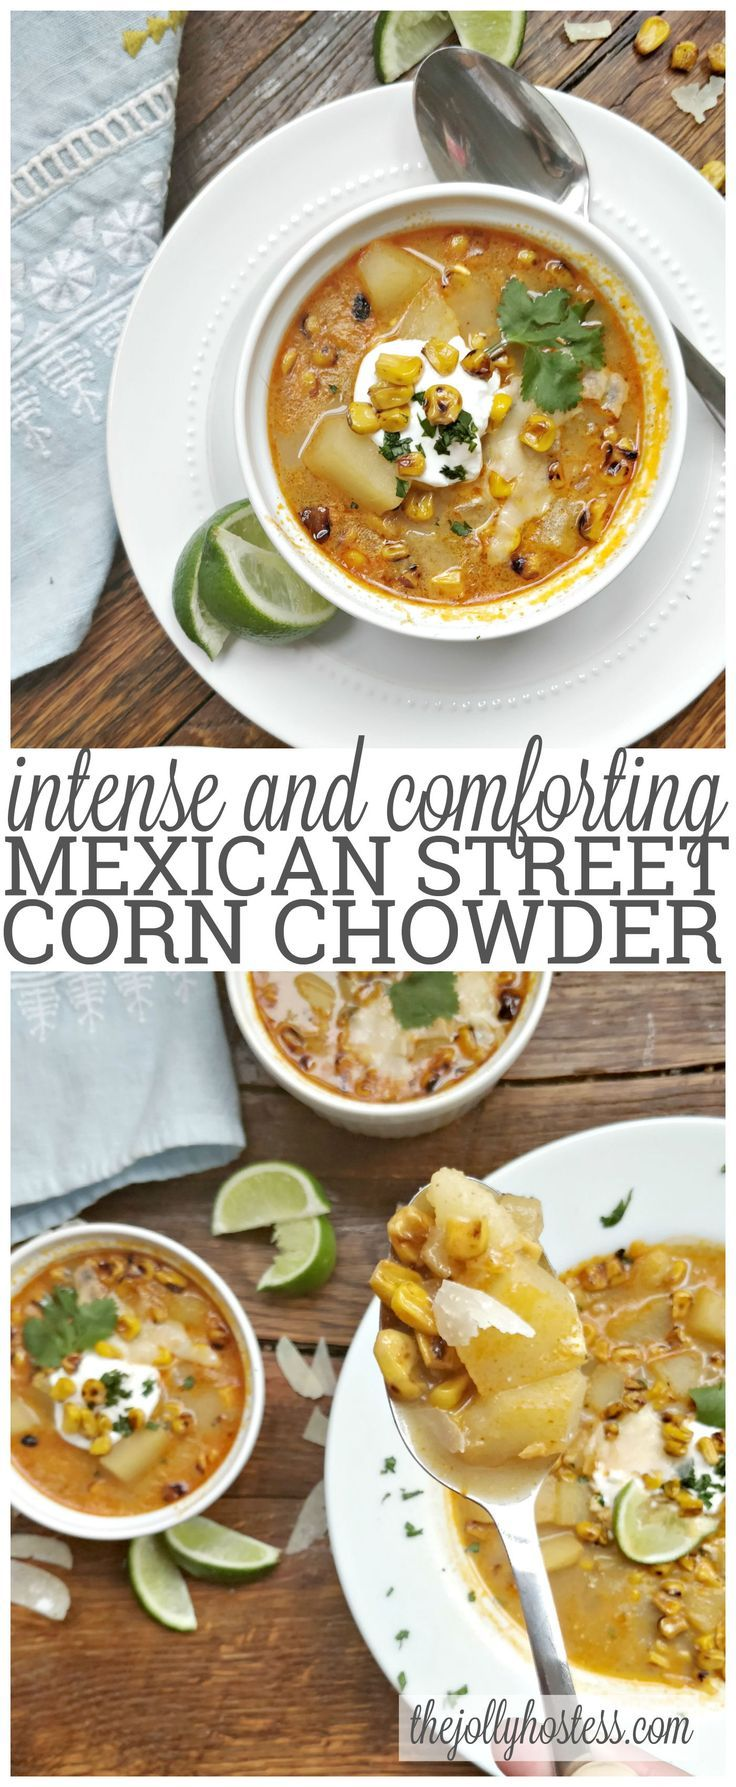 Mexican street corn chowder | recipes | recipe | appetizers | apps |  | dinner party | ideas | entertaining | low ingredient | easy | the easiest | quick | simple | make ahead | soups | soup | homemade | comfort food | creamy | starter |